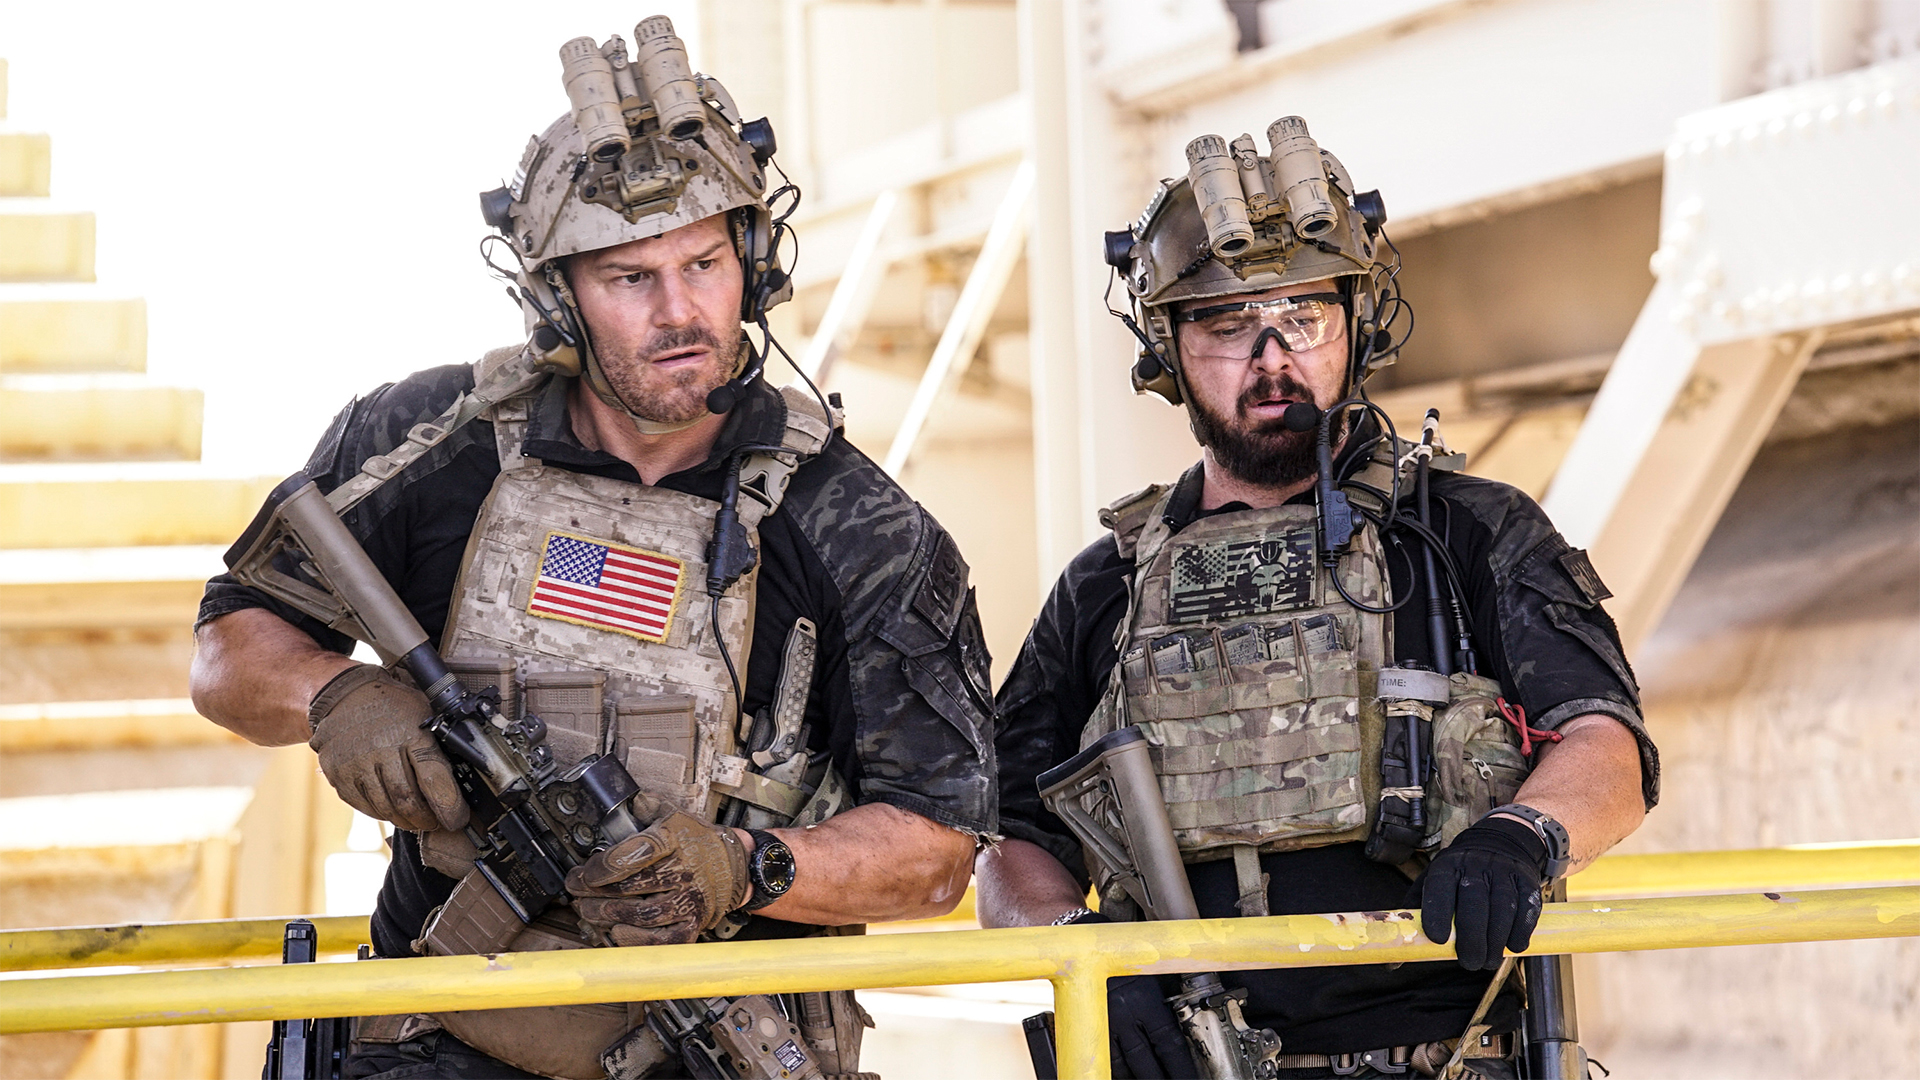 Watch SEAL Team - Stream Full Episodes on CBS All Access